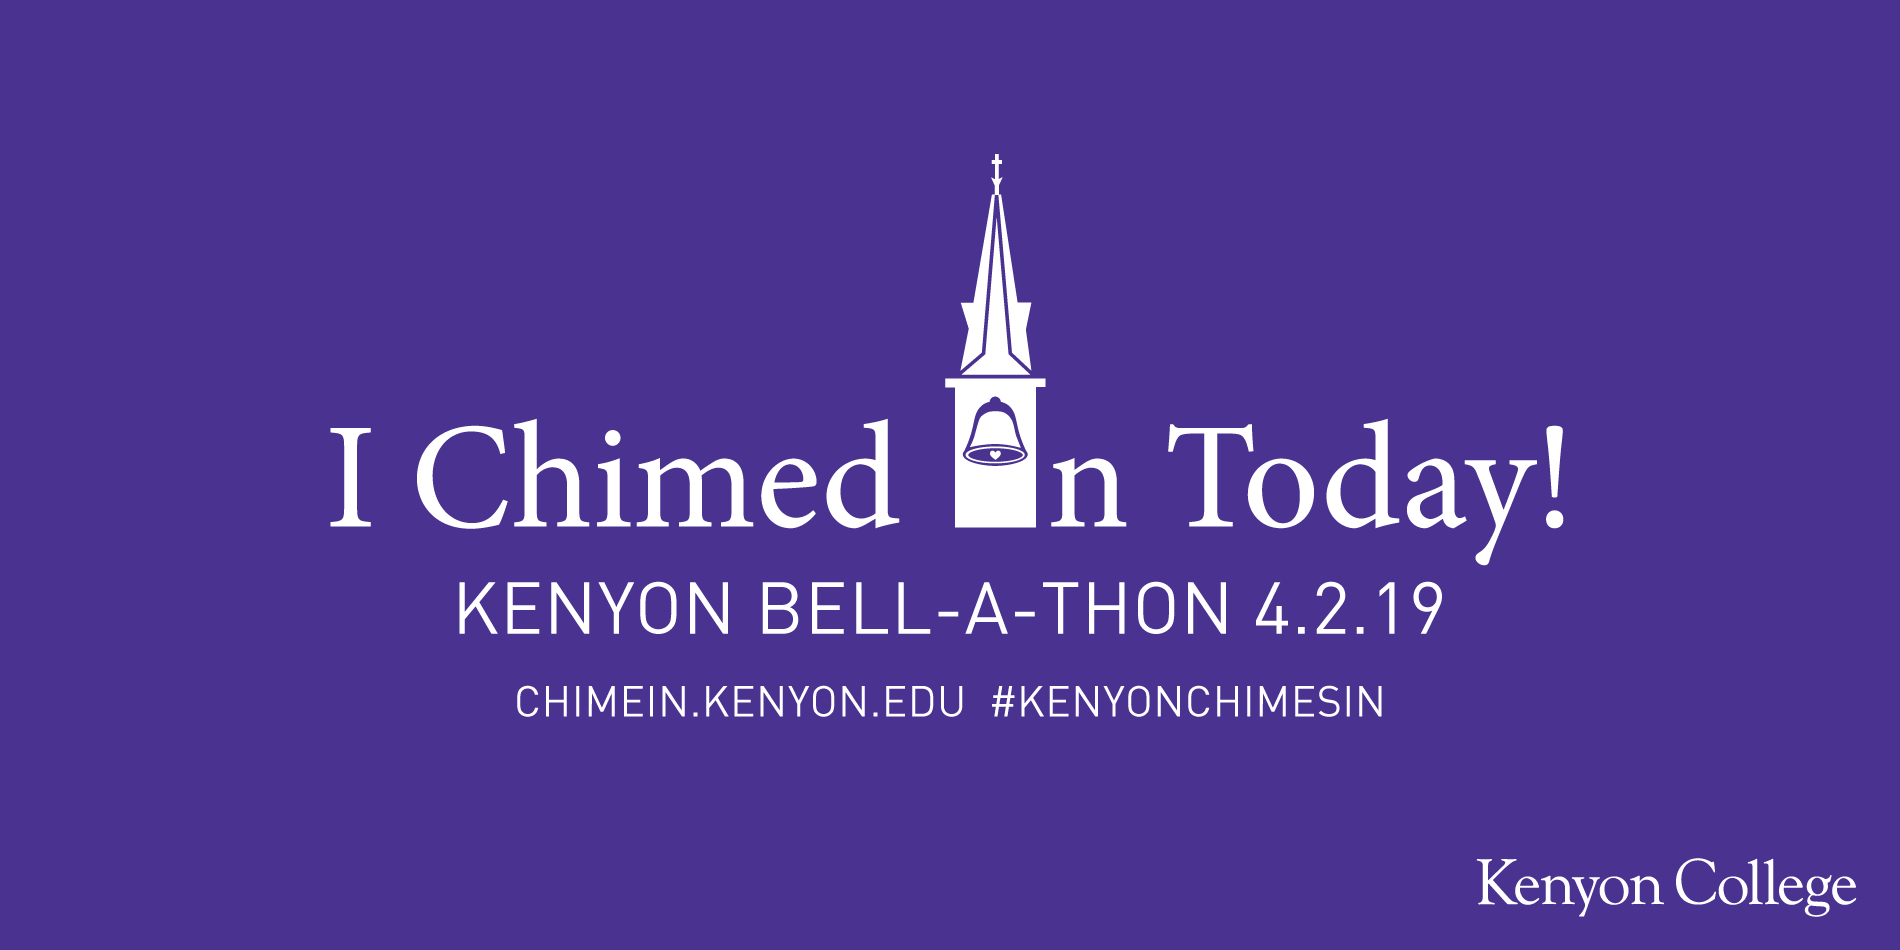 Kenyon College Bell-A-Thon promotion